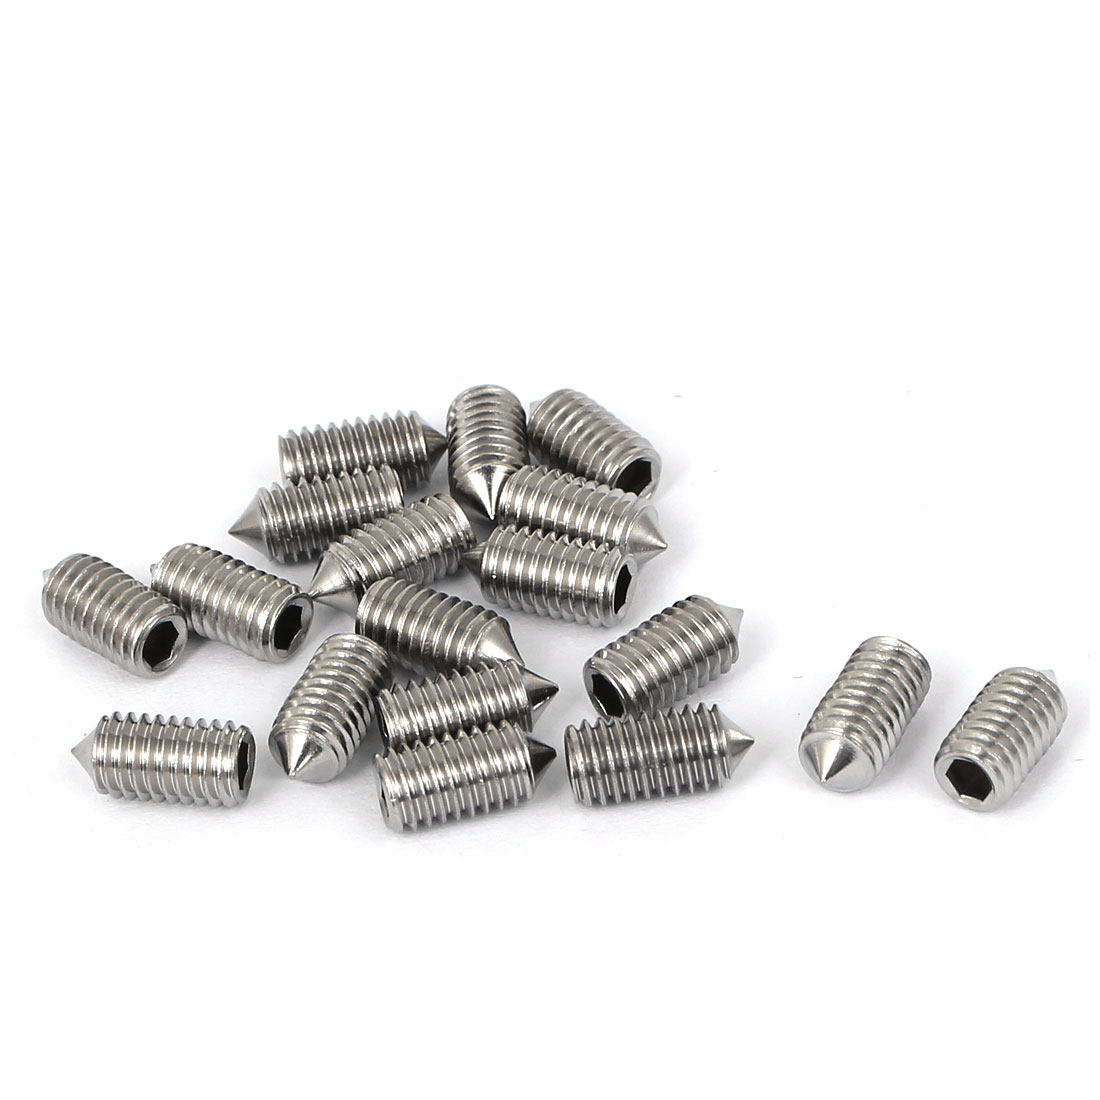 M5x10mm Stainless Steel Hex Socket Set Cone Point Grub Screws Silver Tone 18pcs